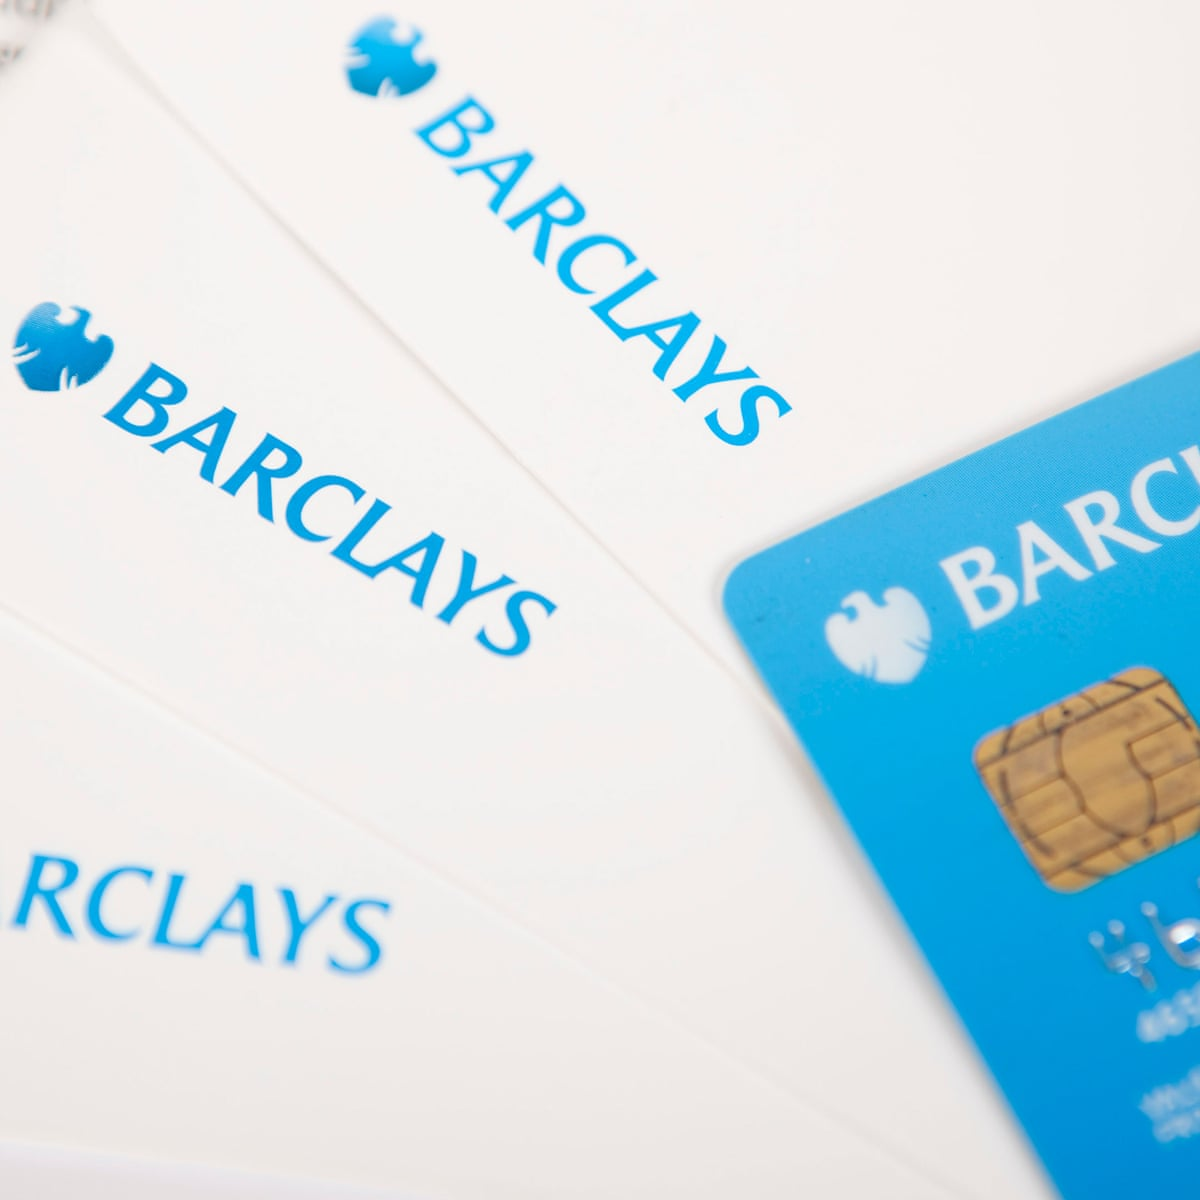 Barclays In Major Security Breach As It Admits Posting Out Pin Numbers With New Cards Banks And Building Societies The Guardian